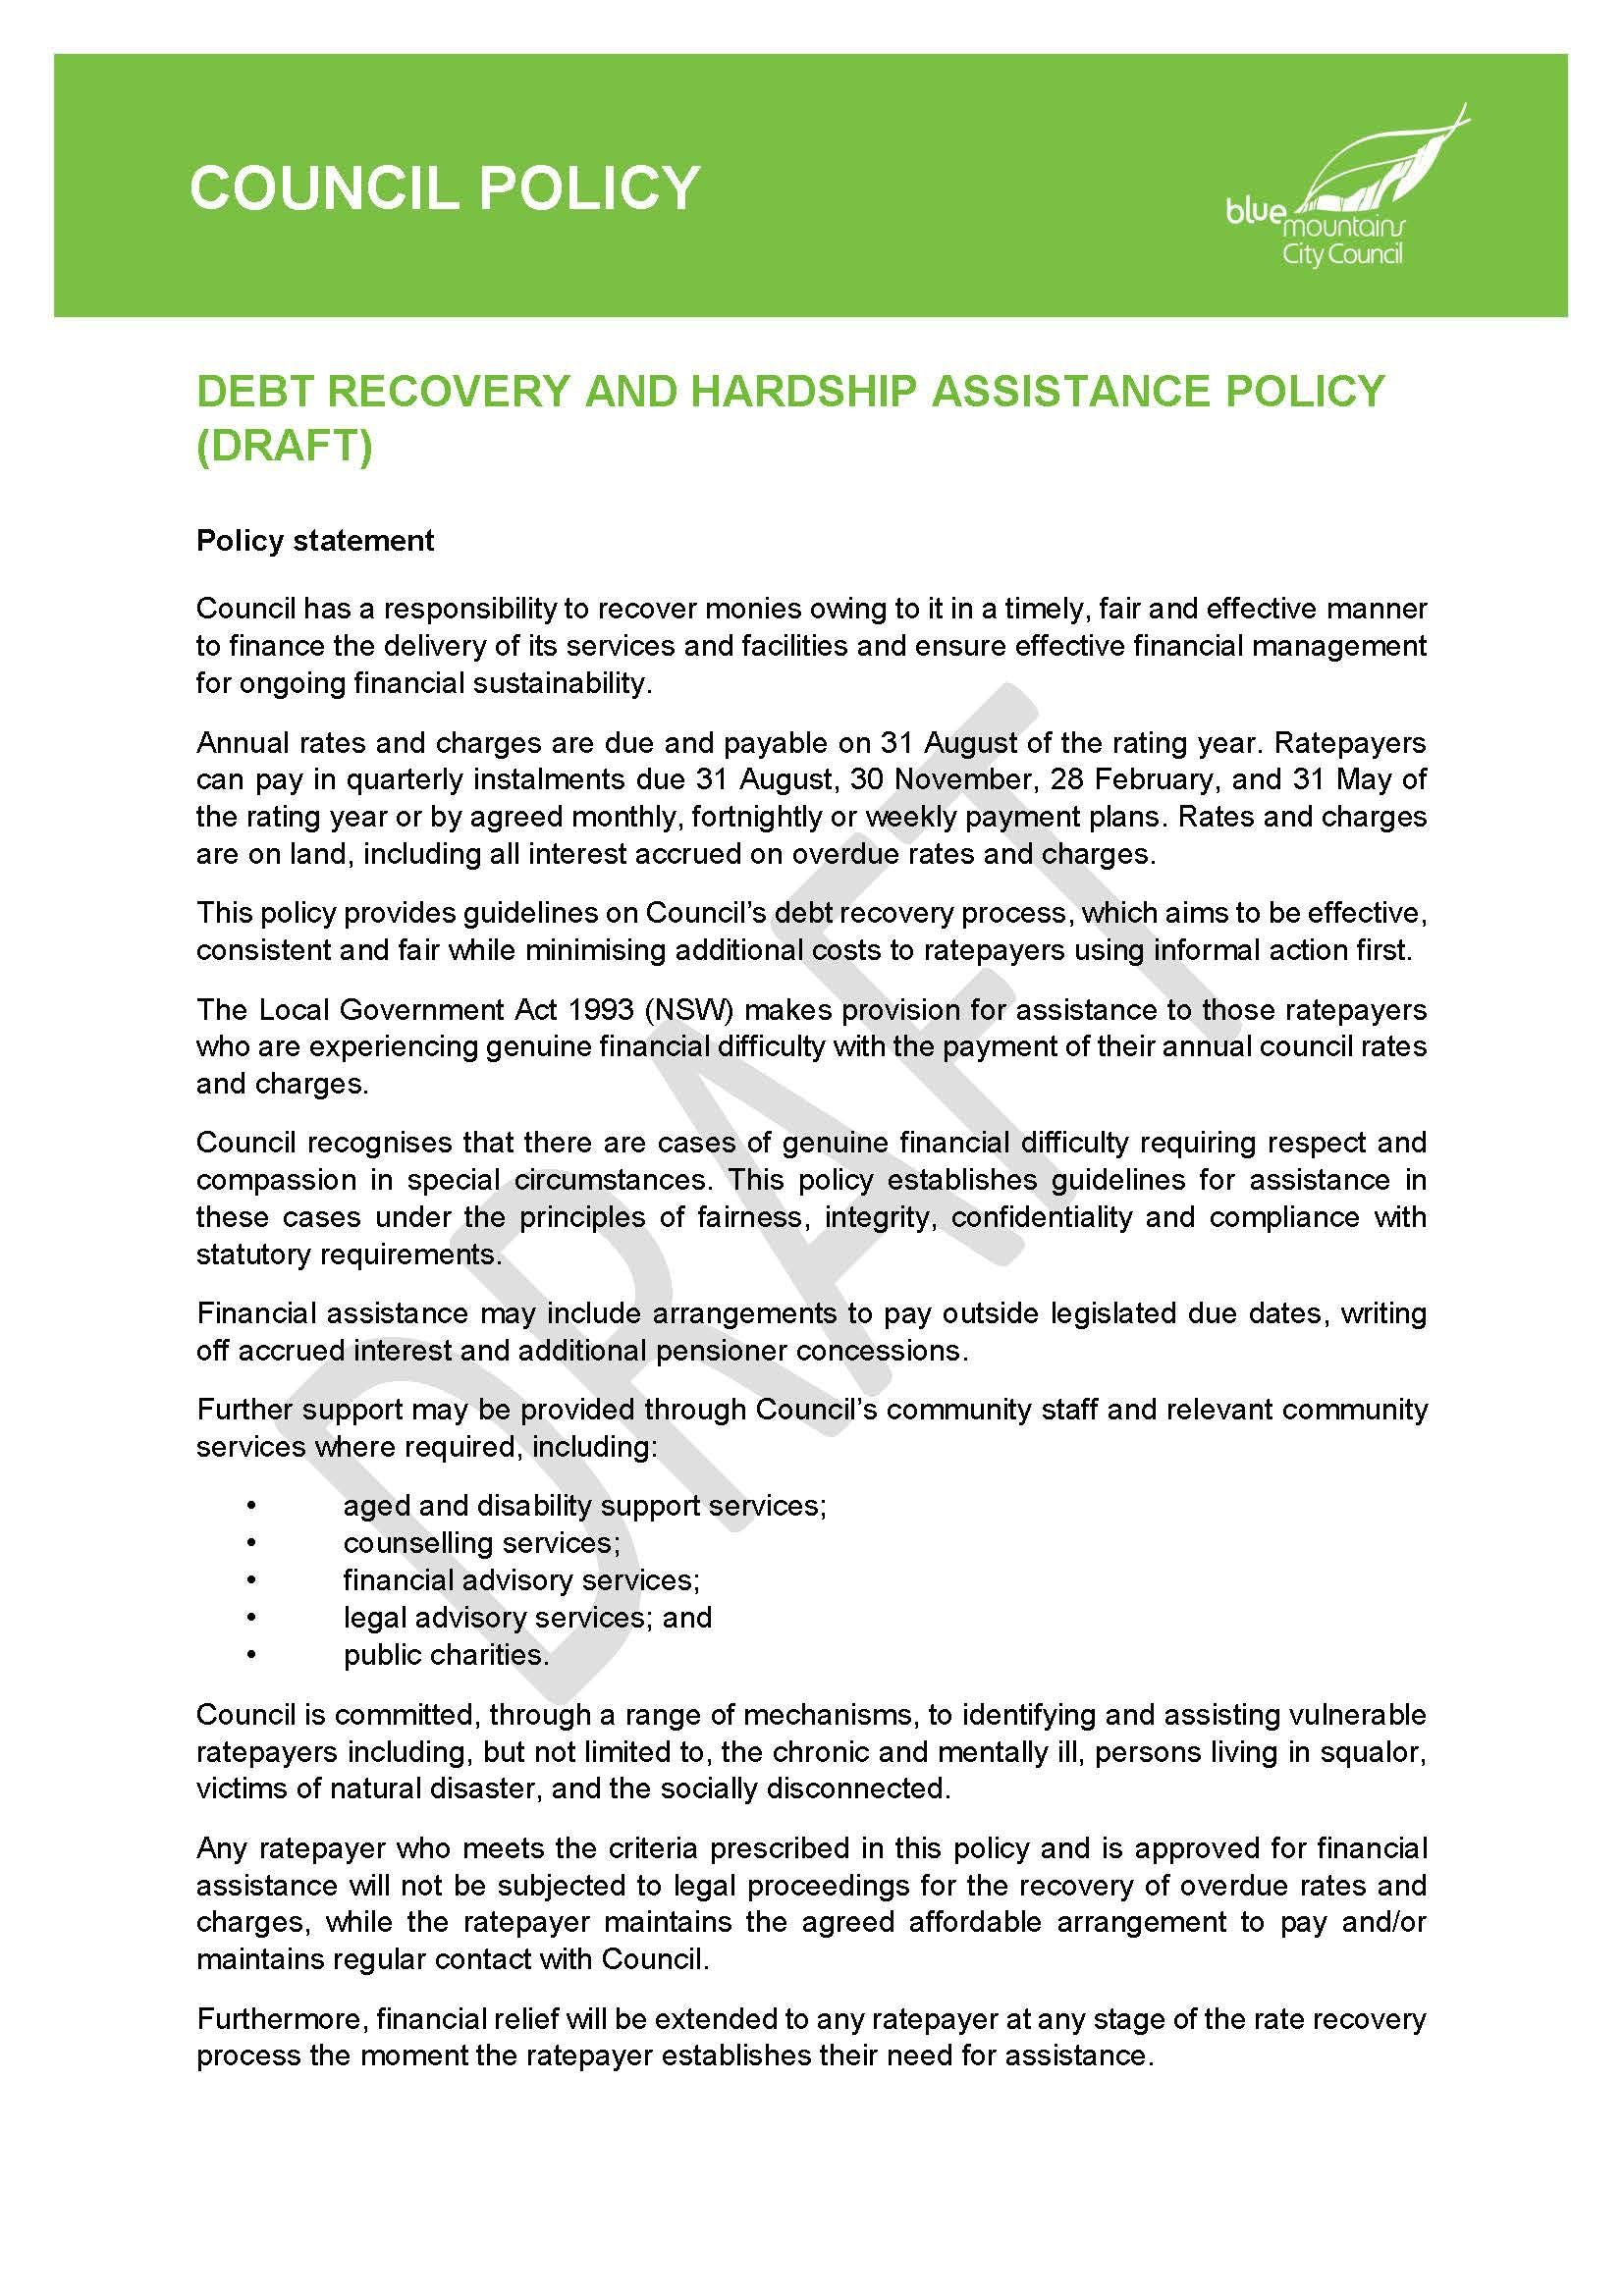 Draft Debt Recovery & Hardship Assistance Policy